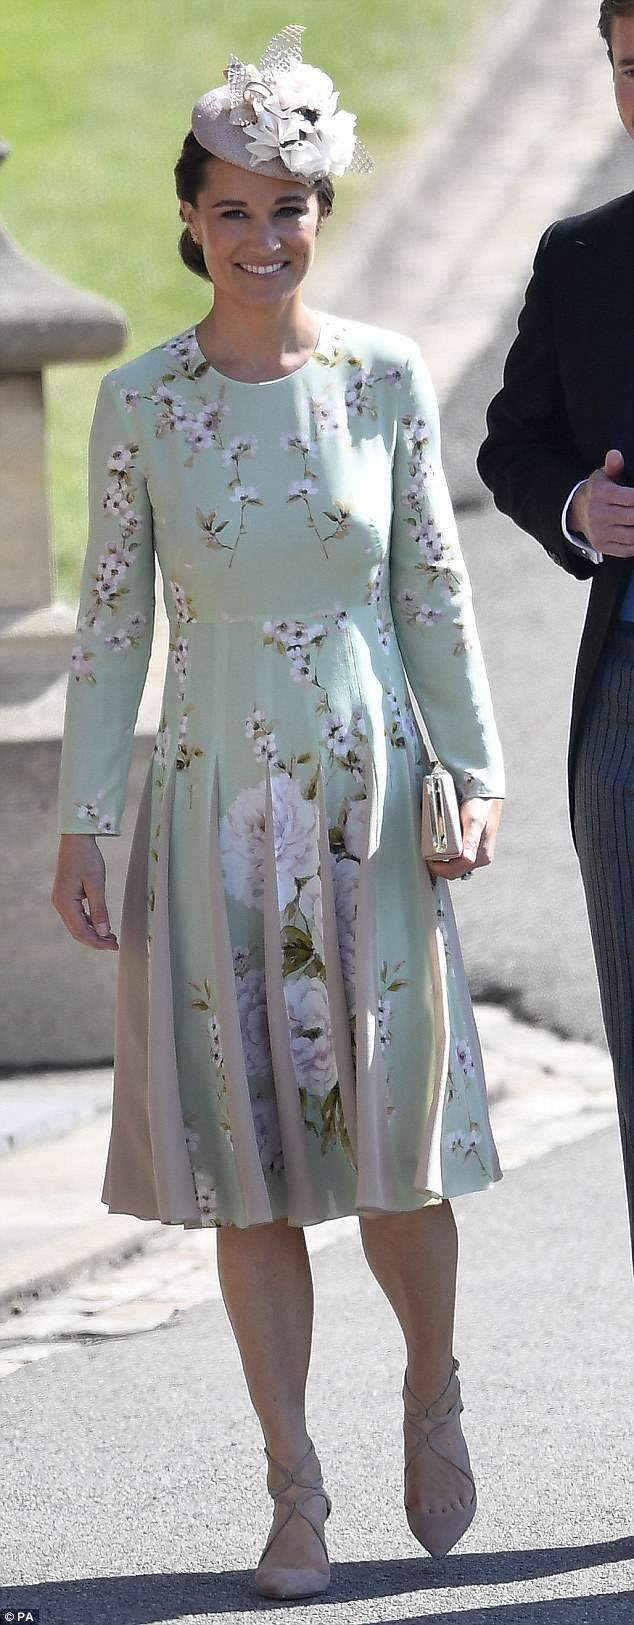 George and Amal Clooney at the Royal Wedding - Page 2 4C71353500000578-5751241-Pippa_Middleton_in_a_495_print_by_British_label_The_Fold_Thank_t-a-32_1526885491731